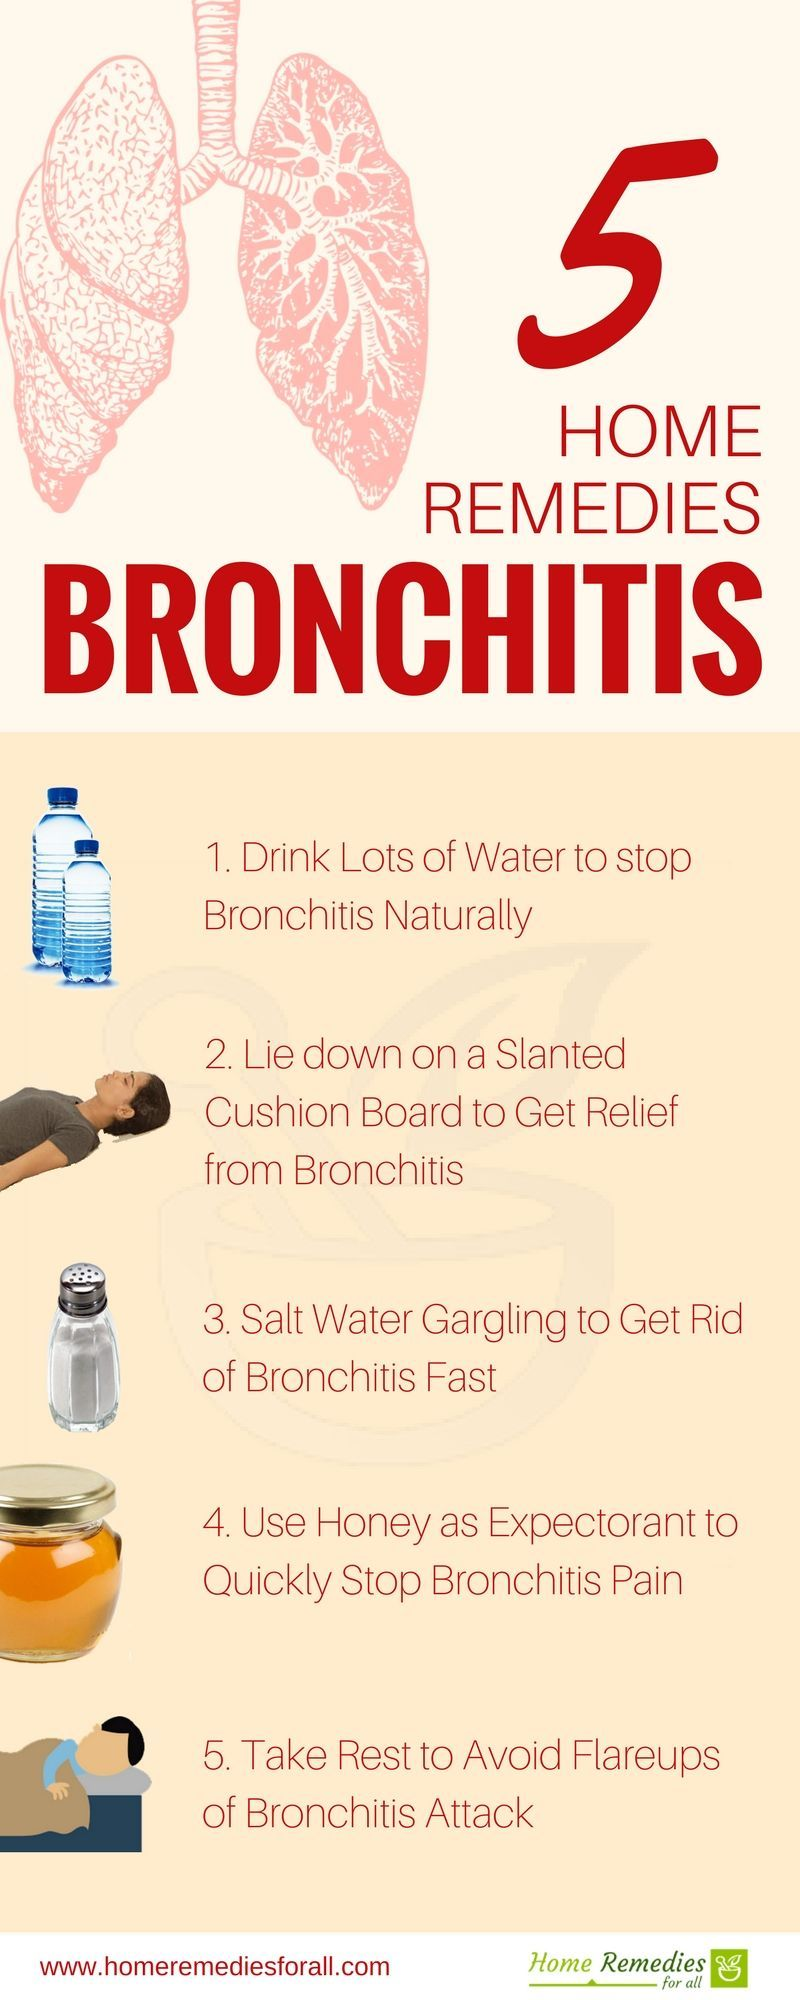 What inhalations for bronchitis are most effective